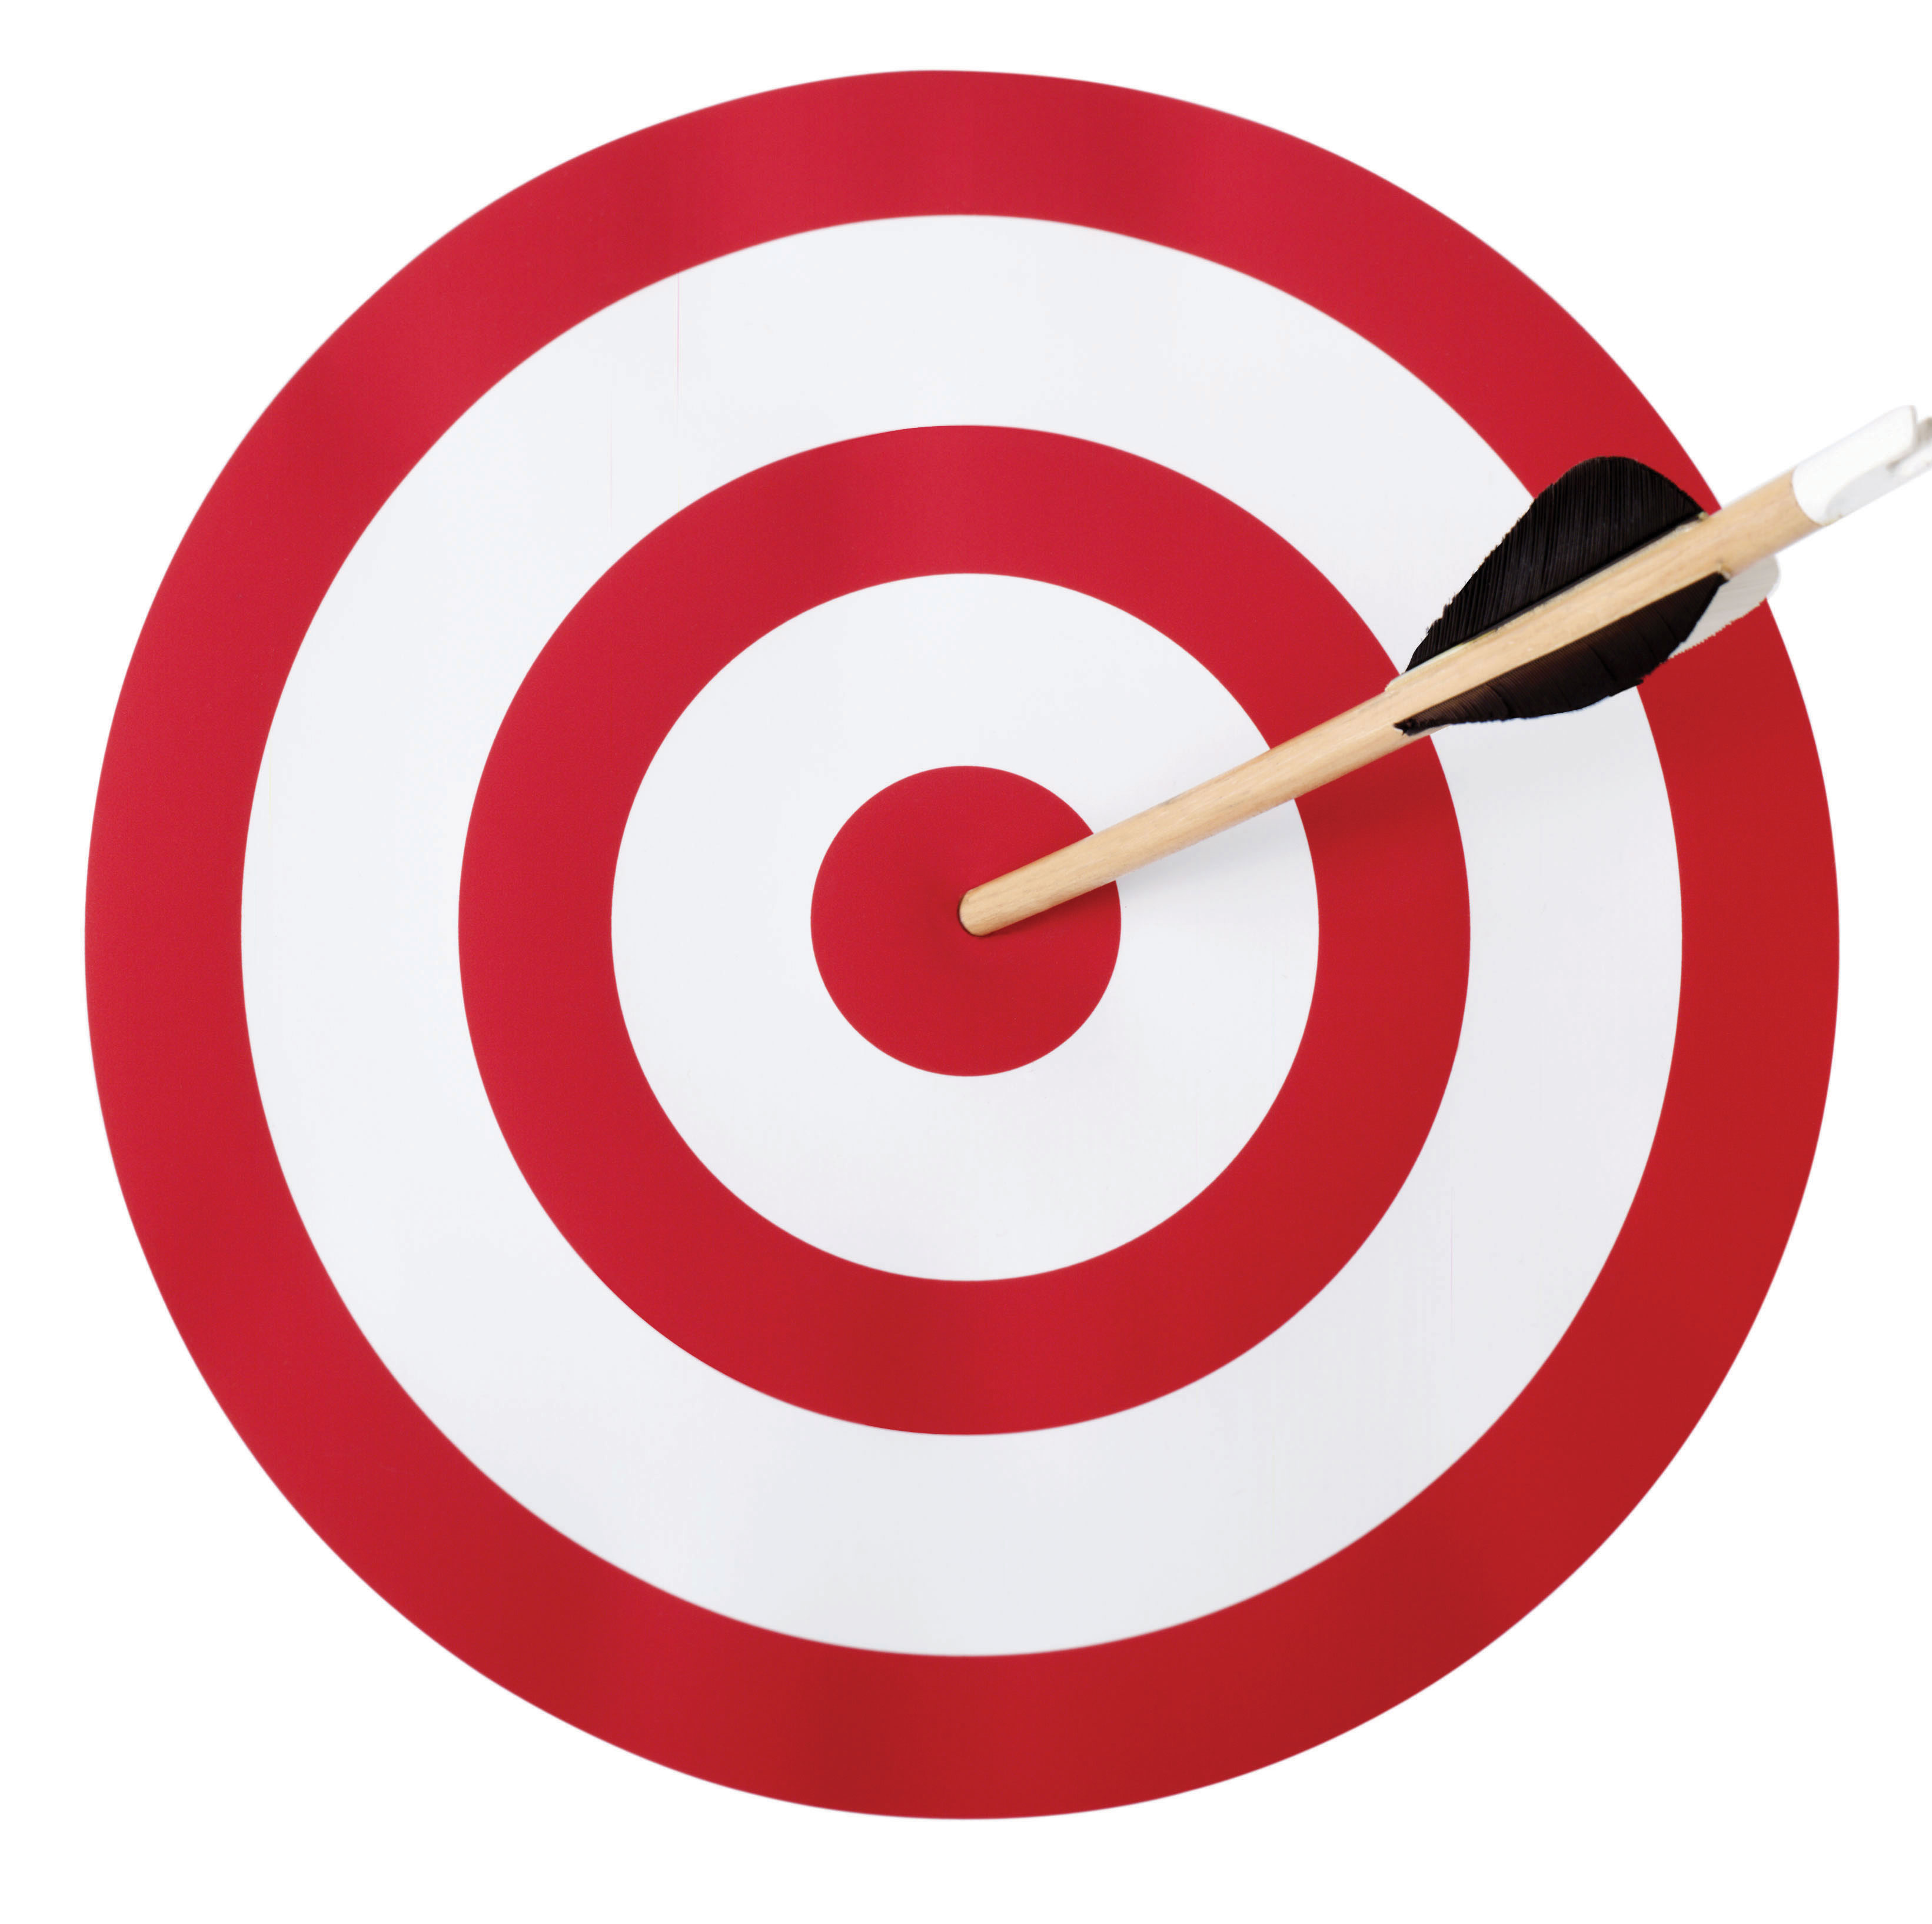 selecting business level strategies clipart picture of a bow and arrow indian bow and arrow clipart